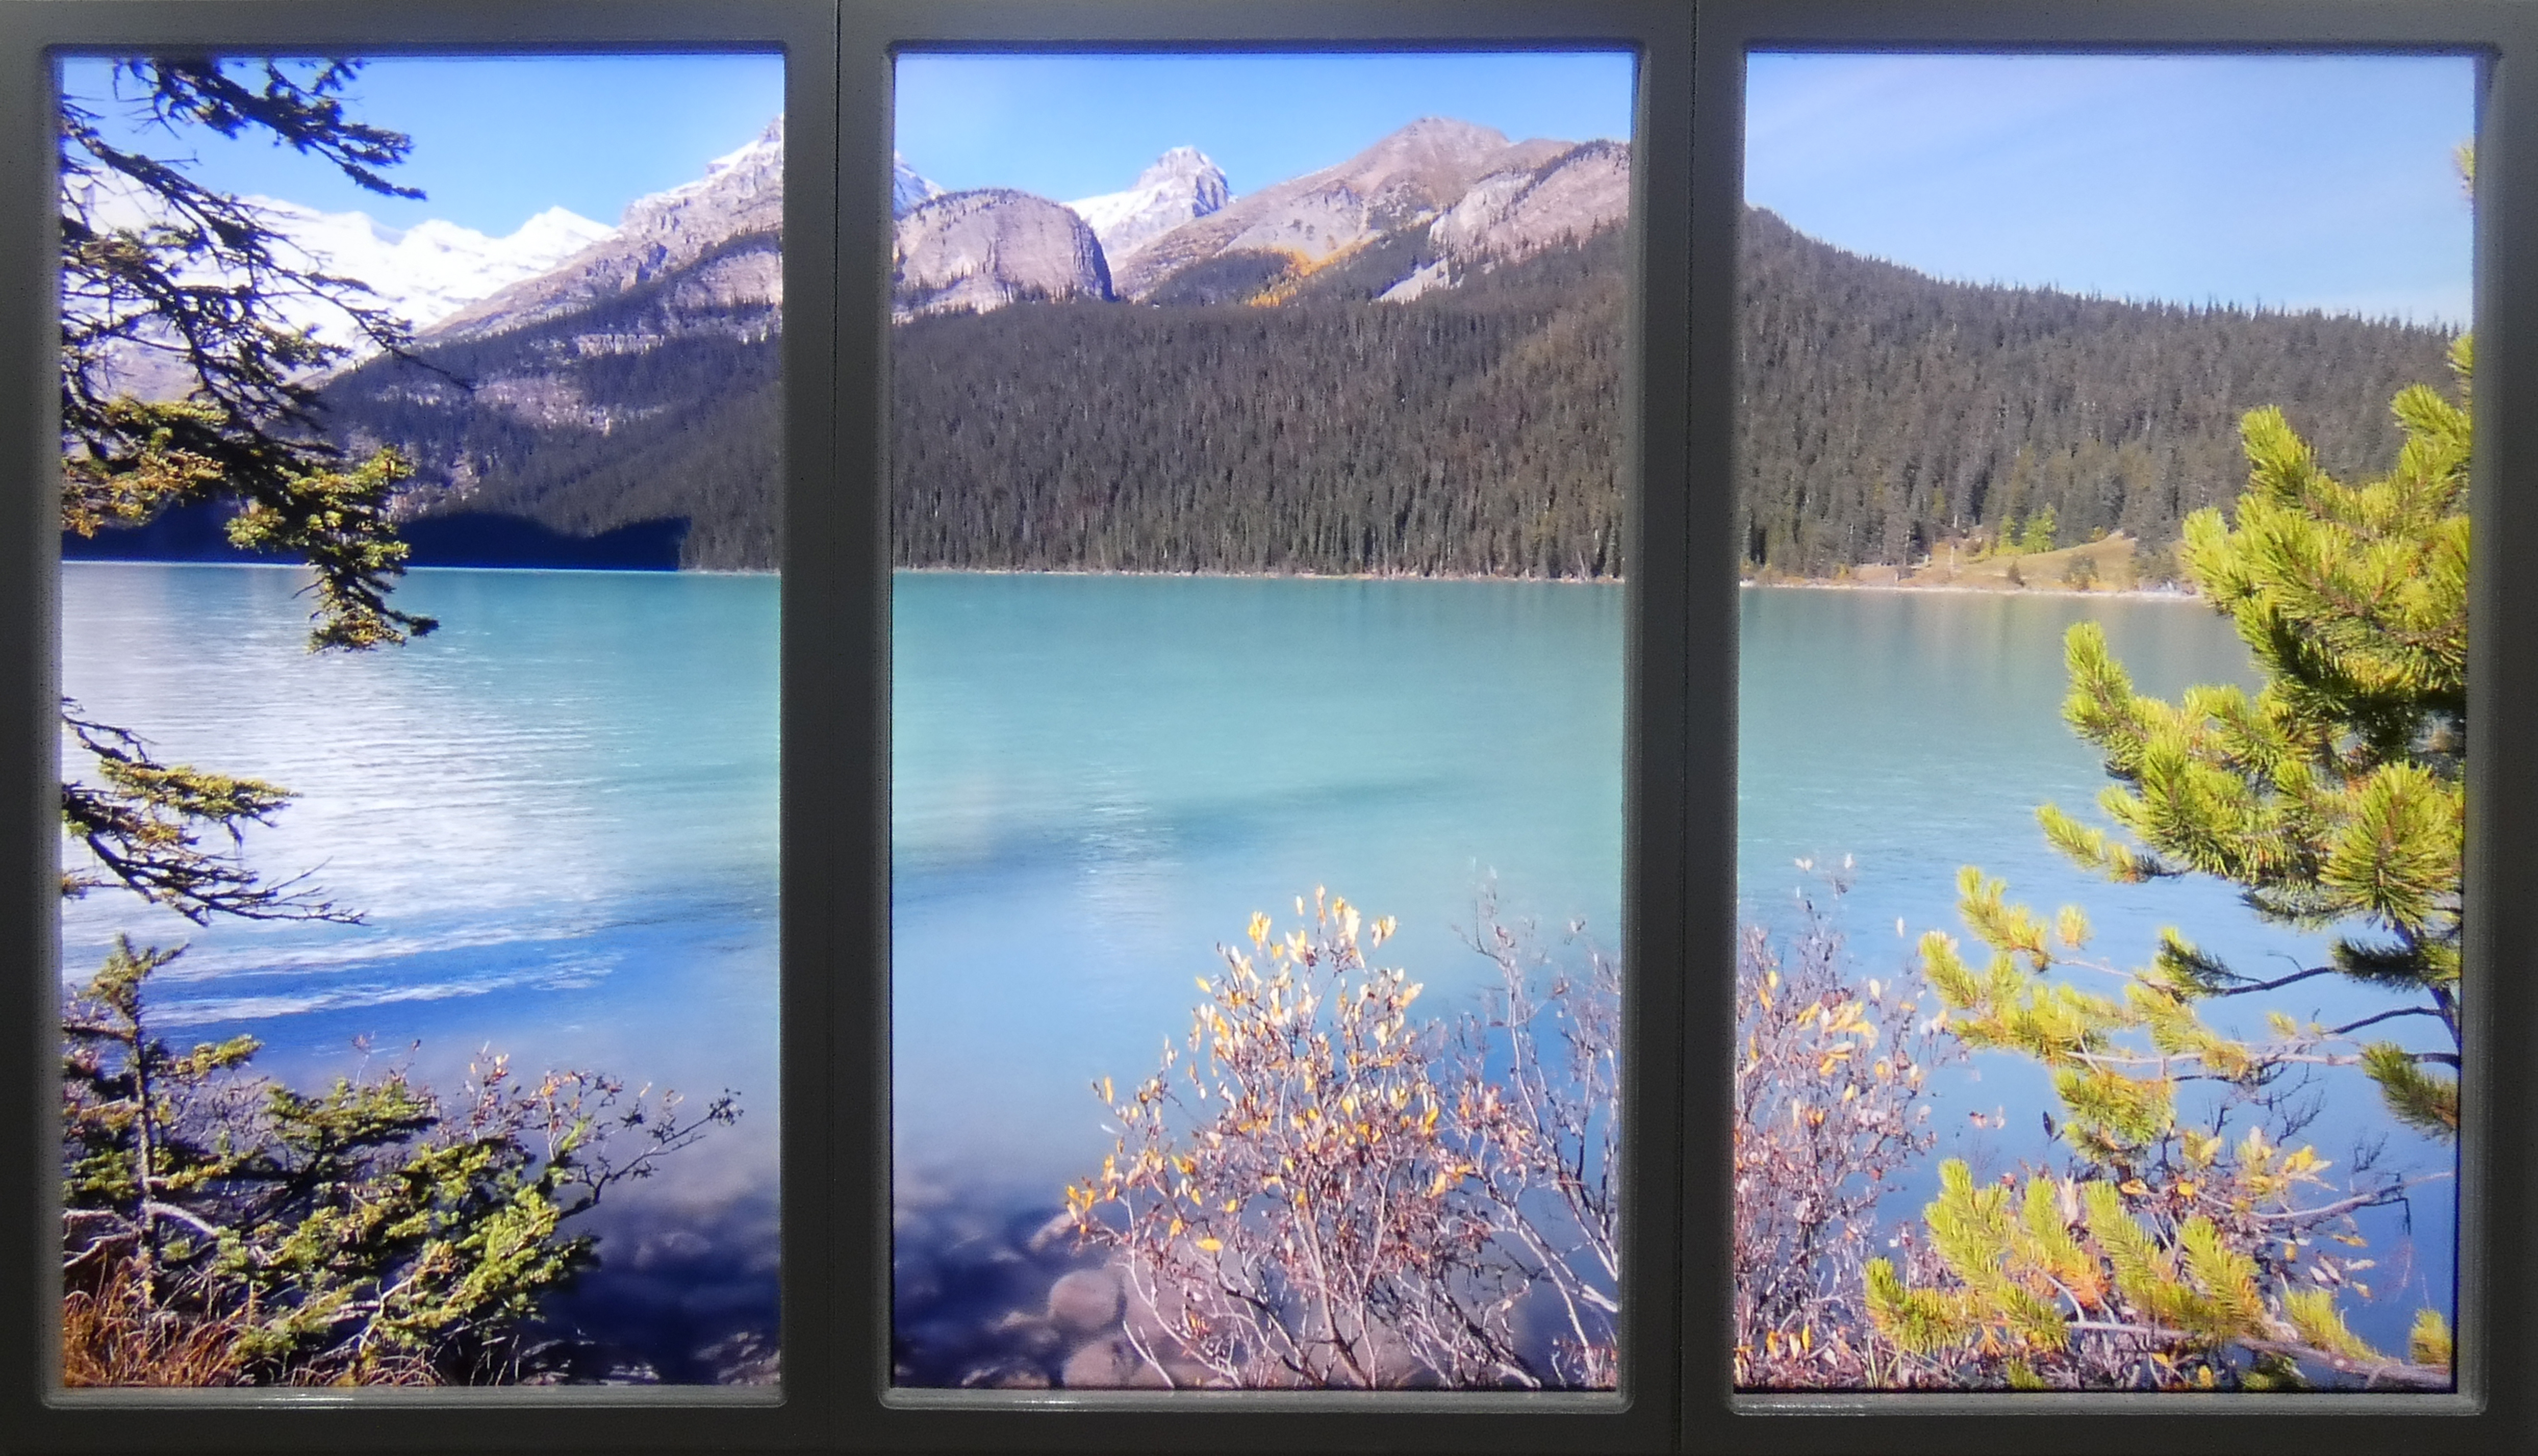 Three windows showing view of lake and mountains